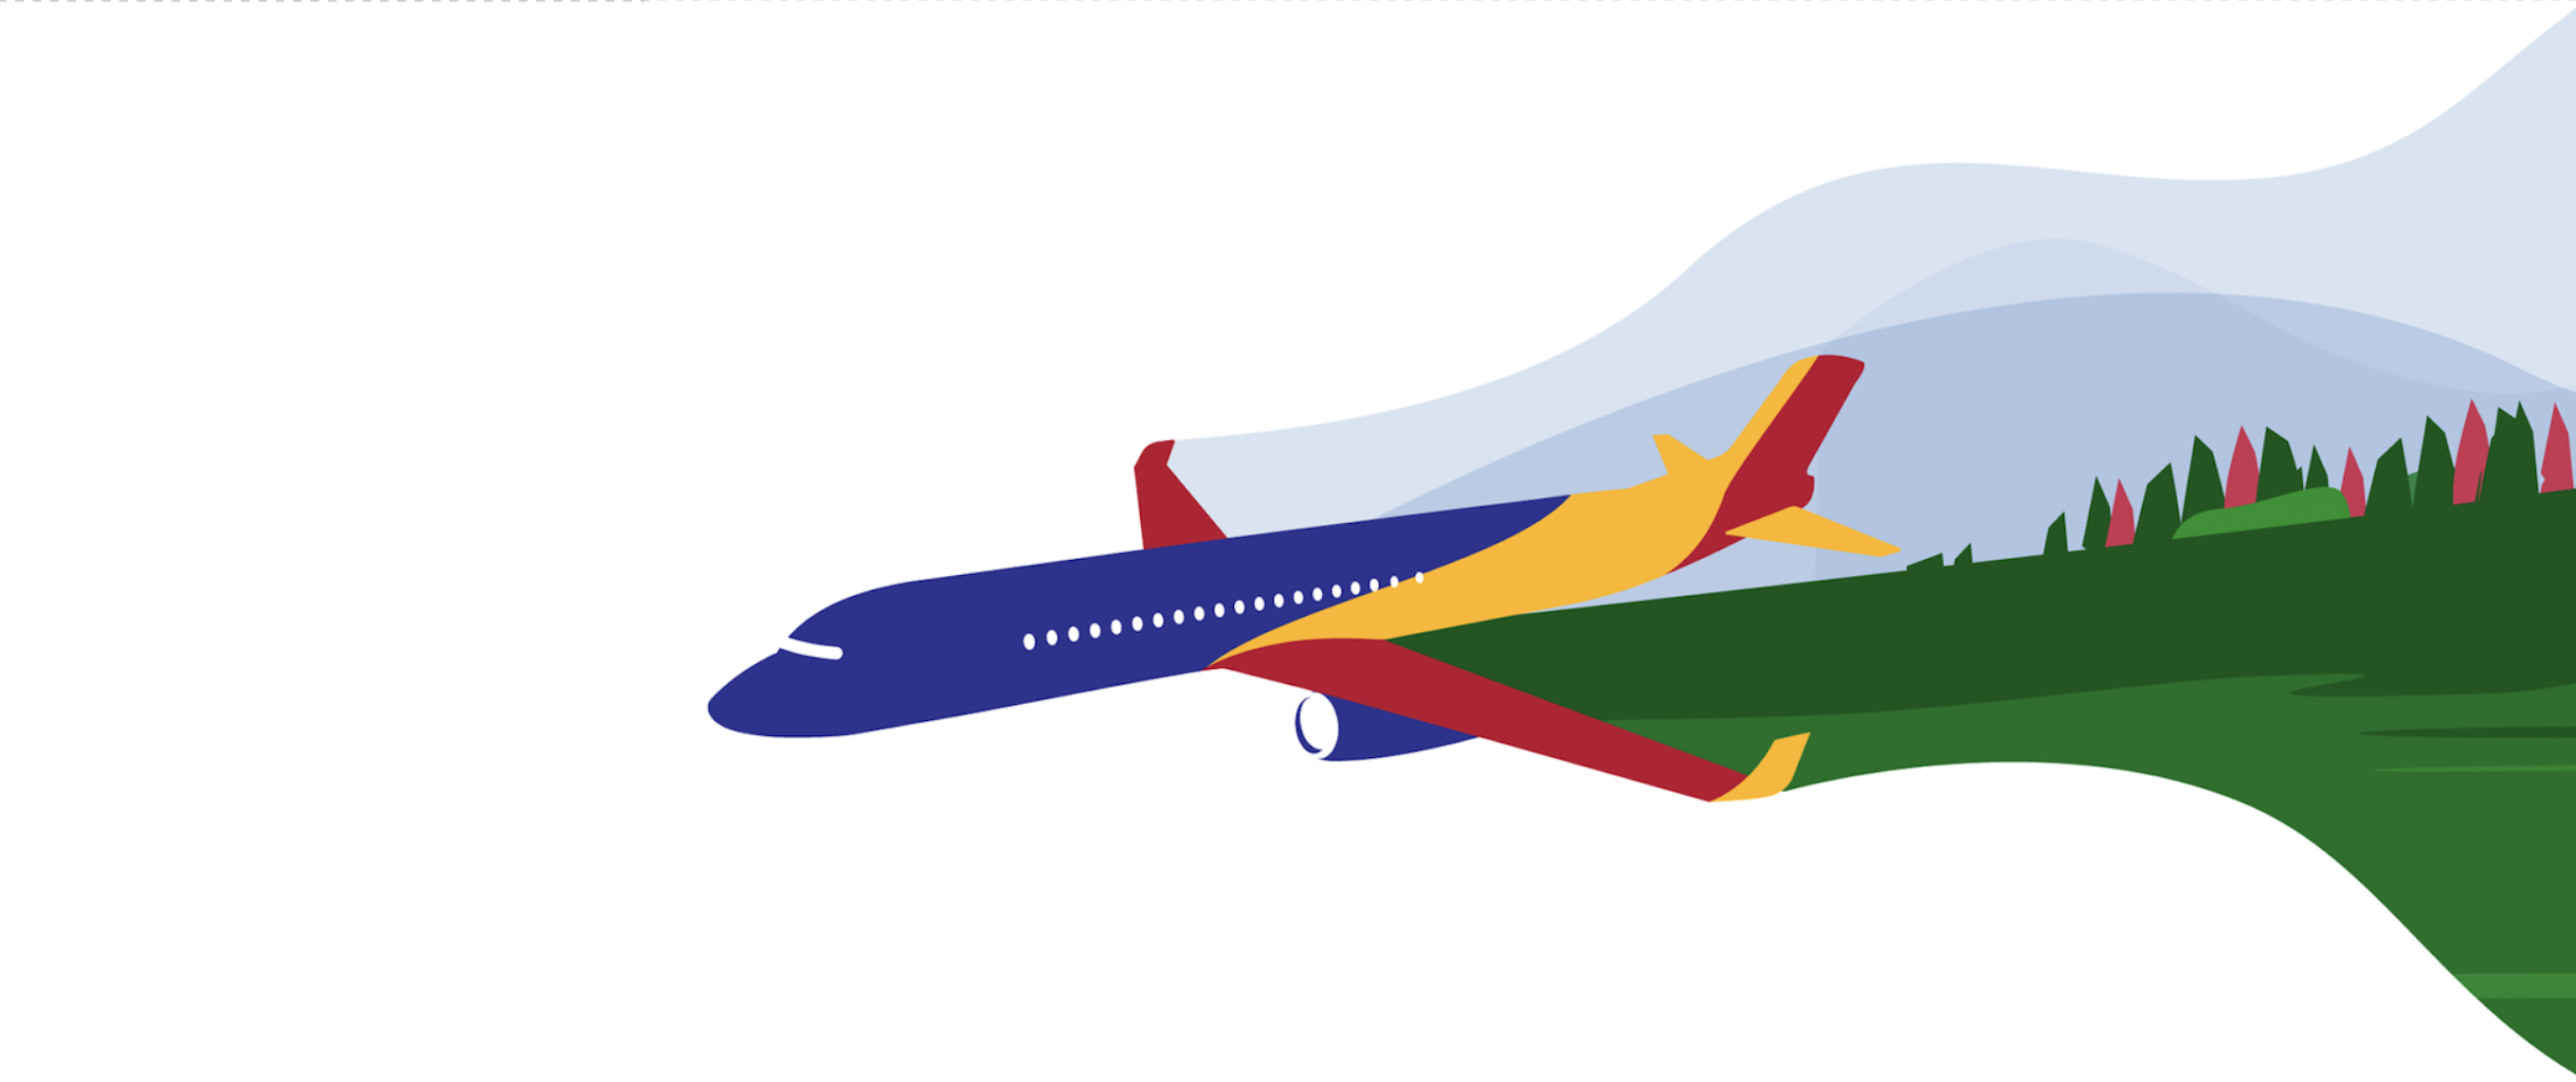 Sideways 6 intrapreneurship examples - Southwest Airlines